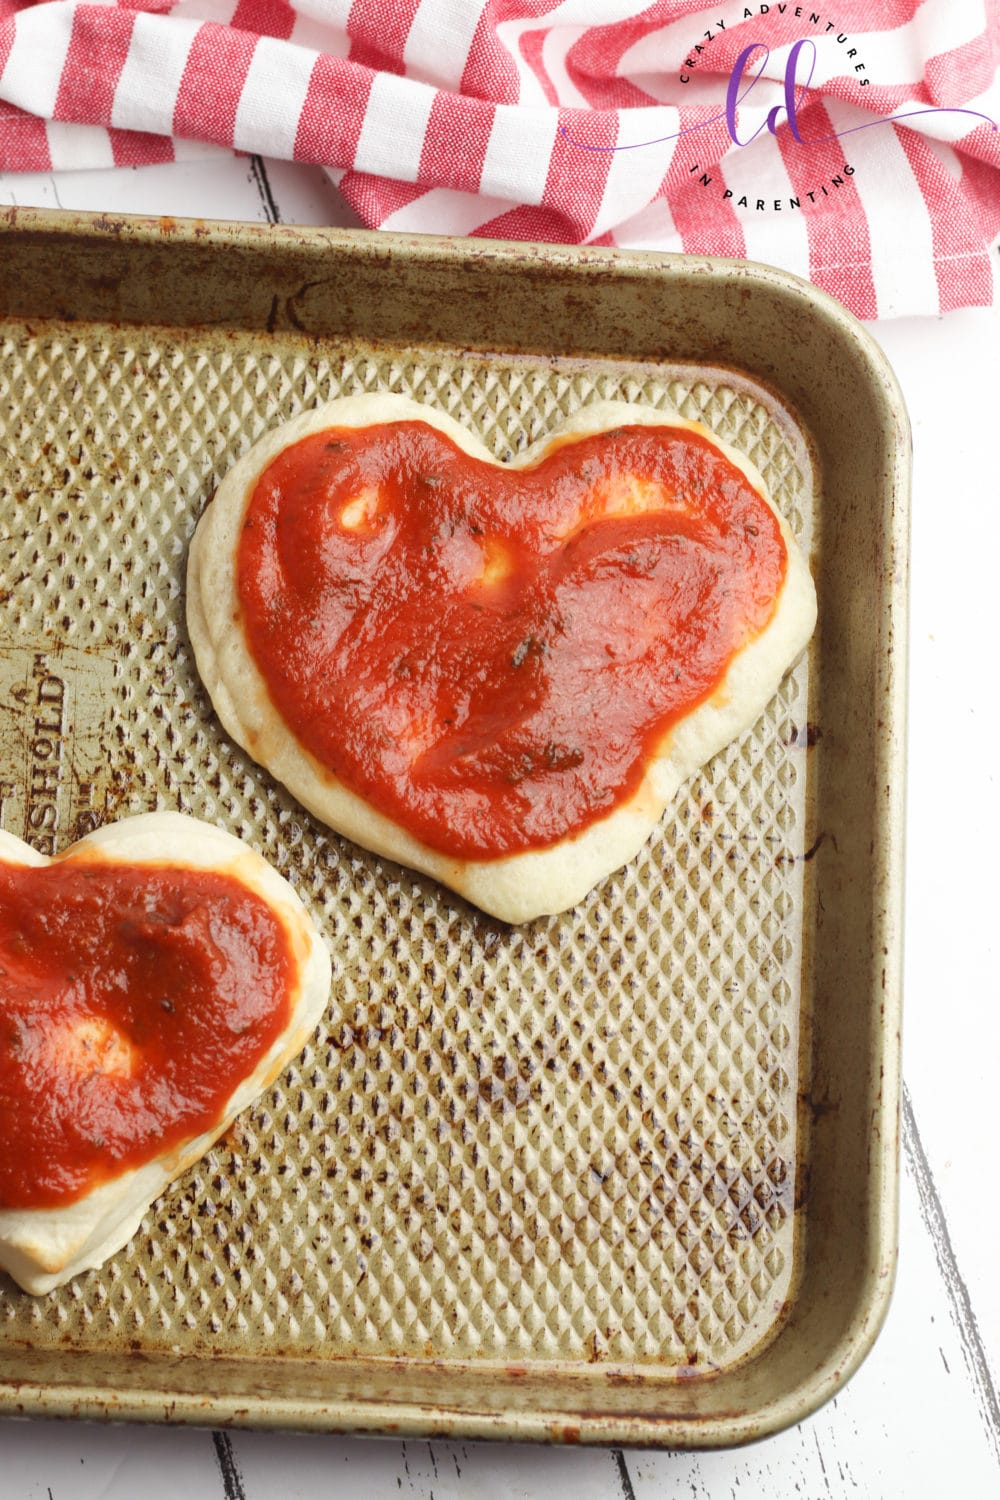 Add Sauce to Dough to Make Heart-Shaped Pizza for Valentine's Day